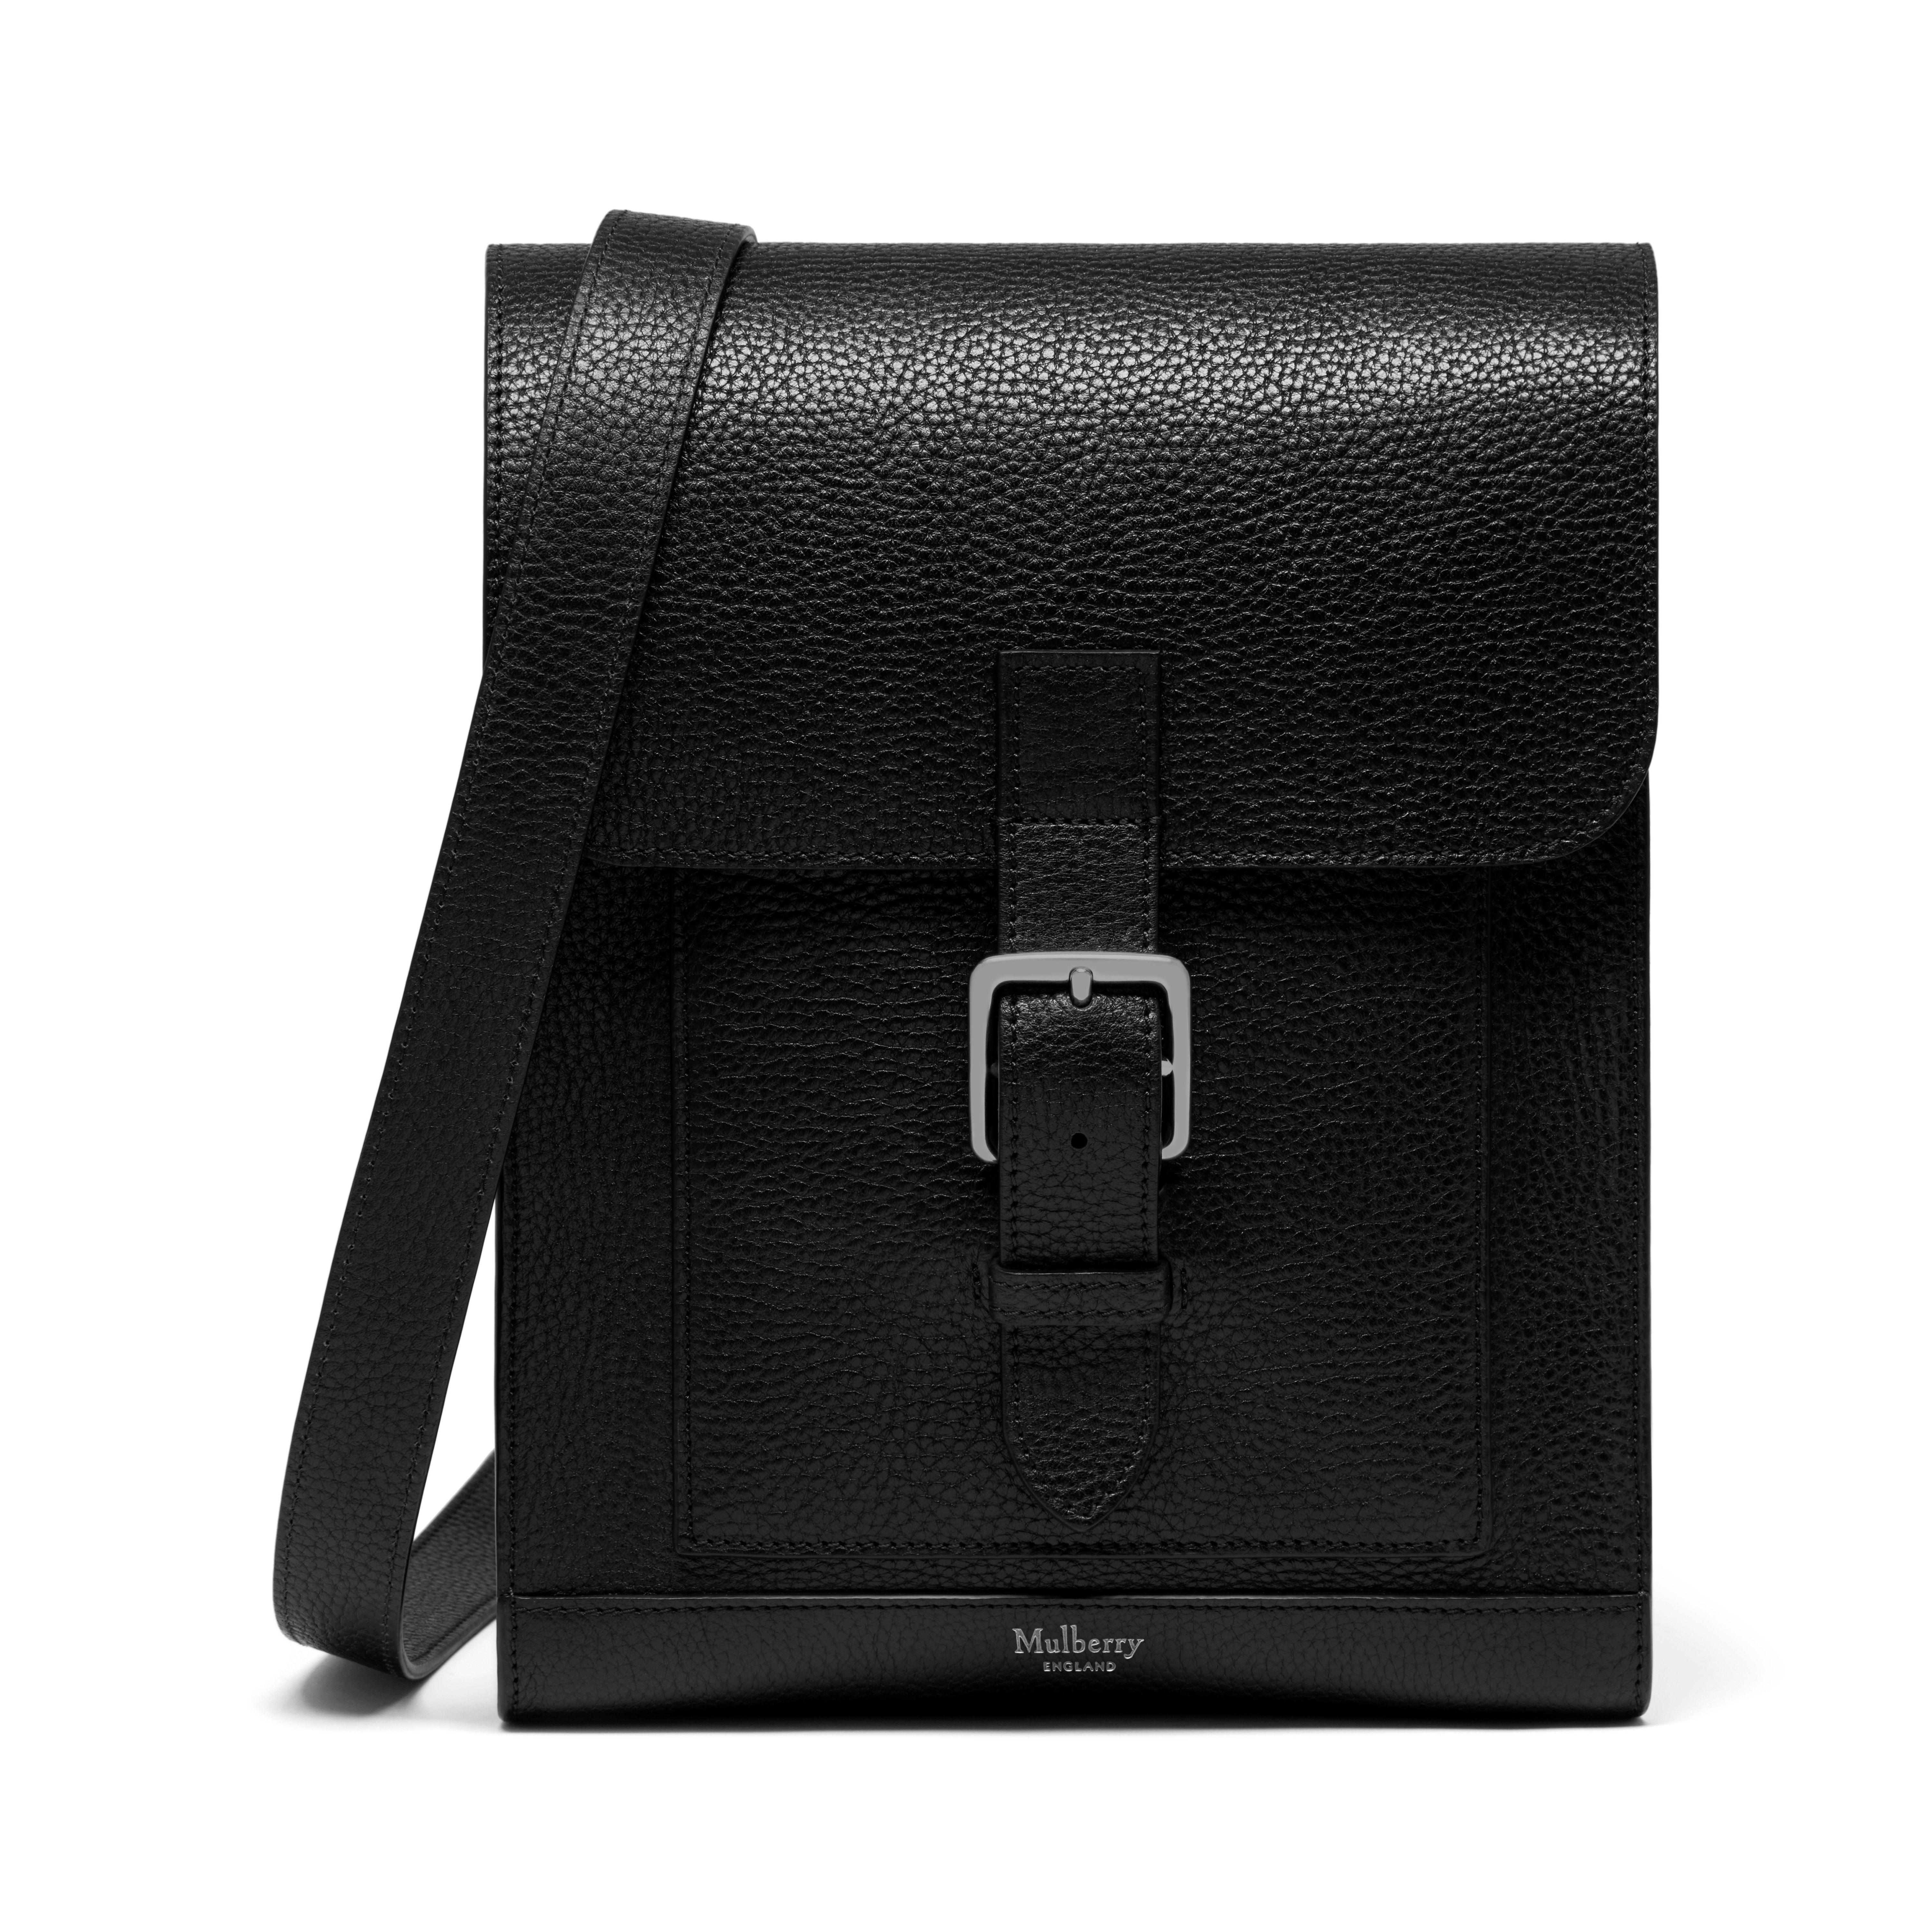 54b0a9f61669 ... bag d3bf5 1512c closeout lyst mulberry chiltern small messenger in  black for men dd895 8b550 ...